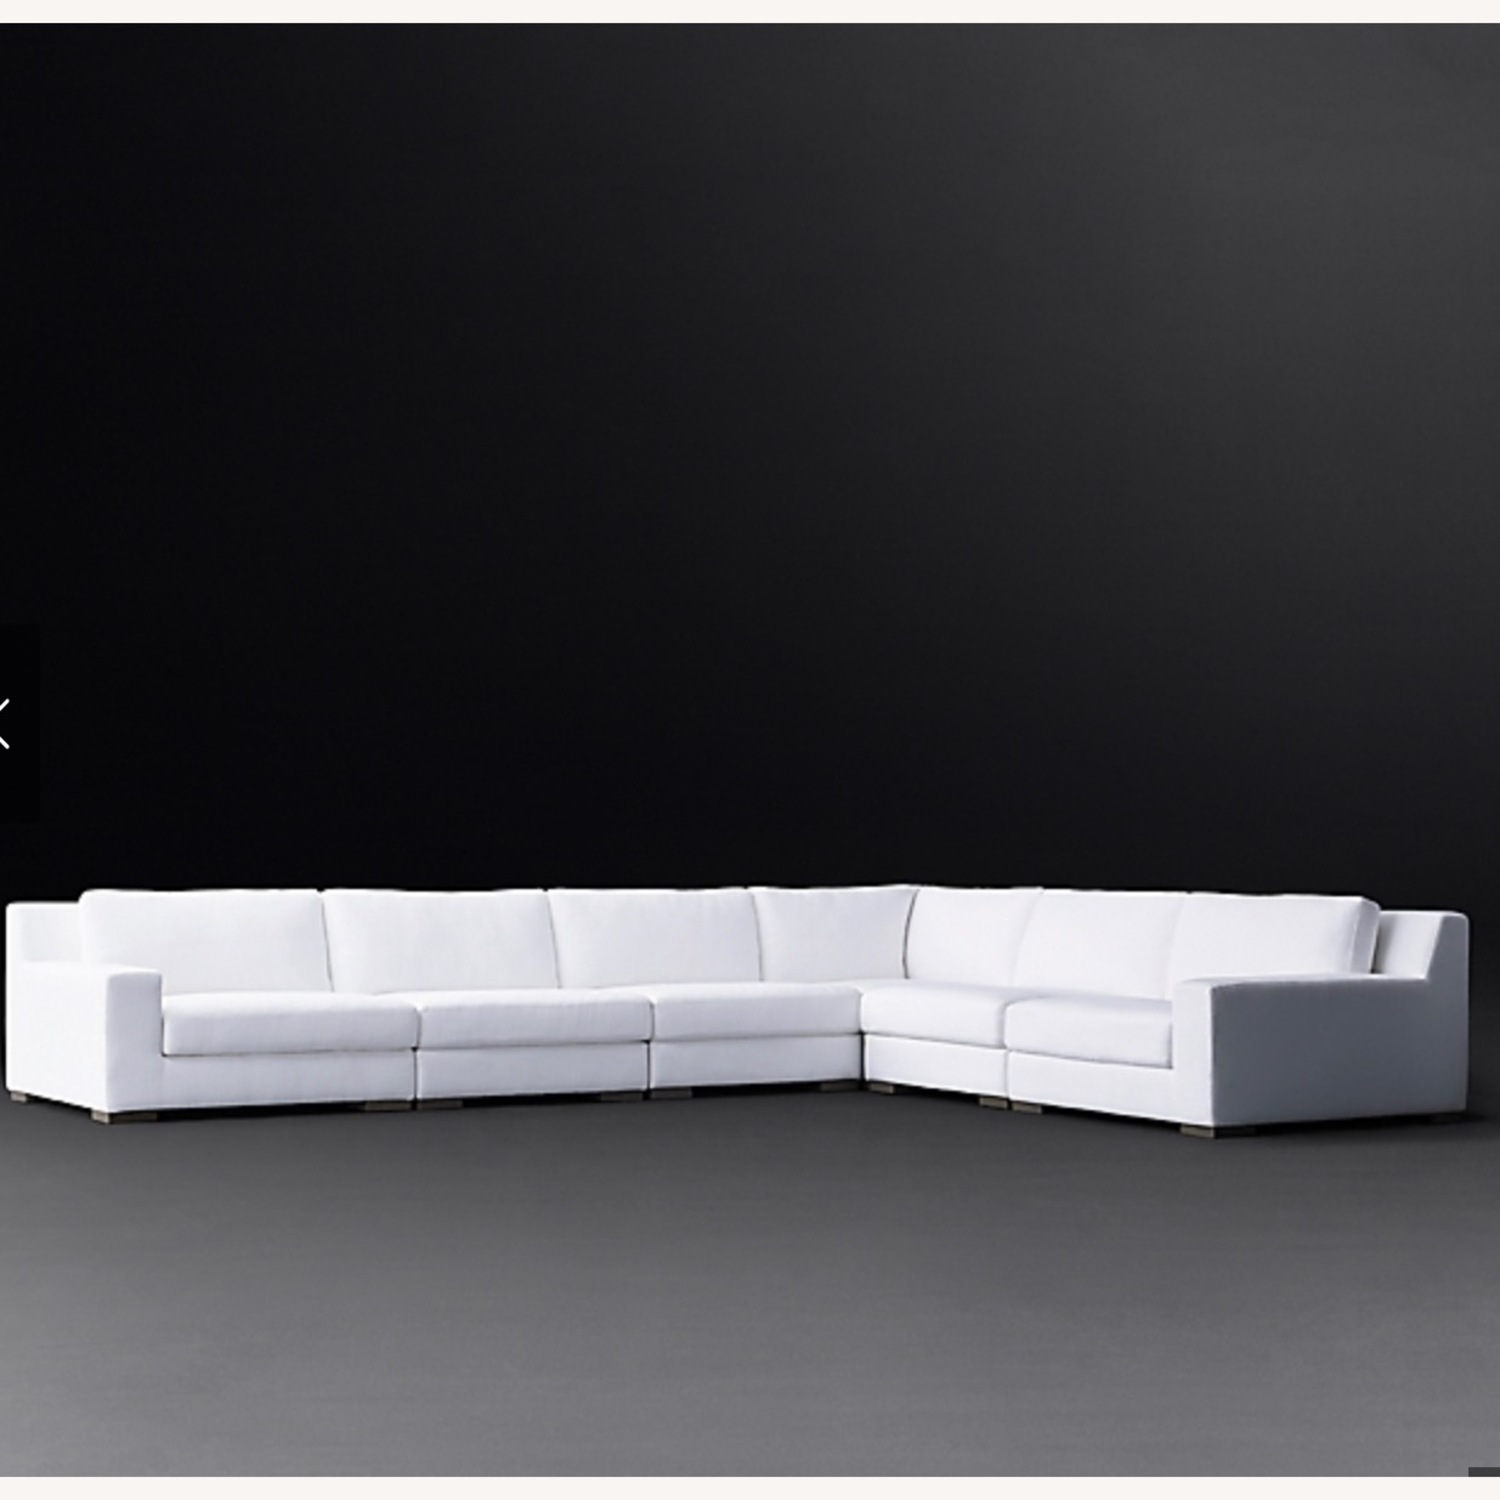 Restoration Hardware Modular Couch Sectional - image-1